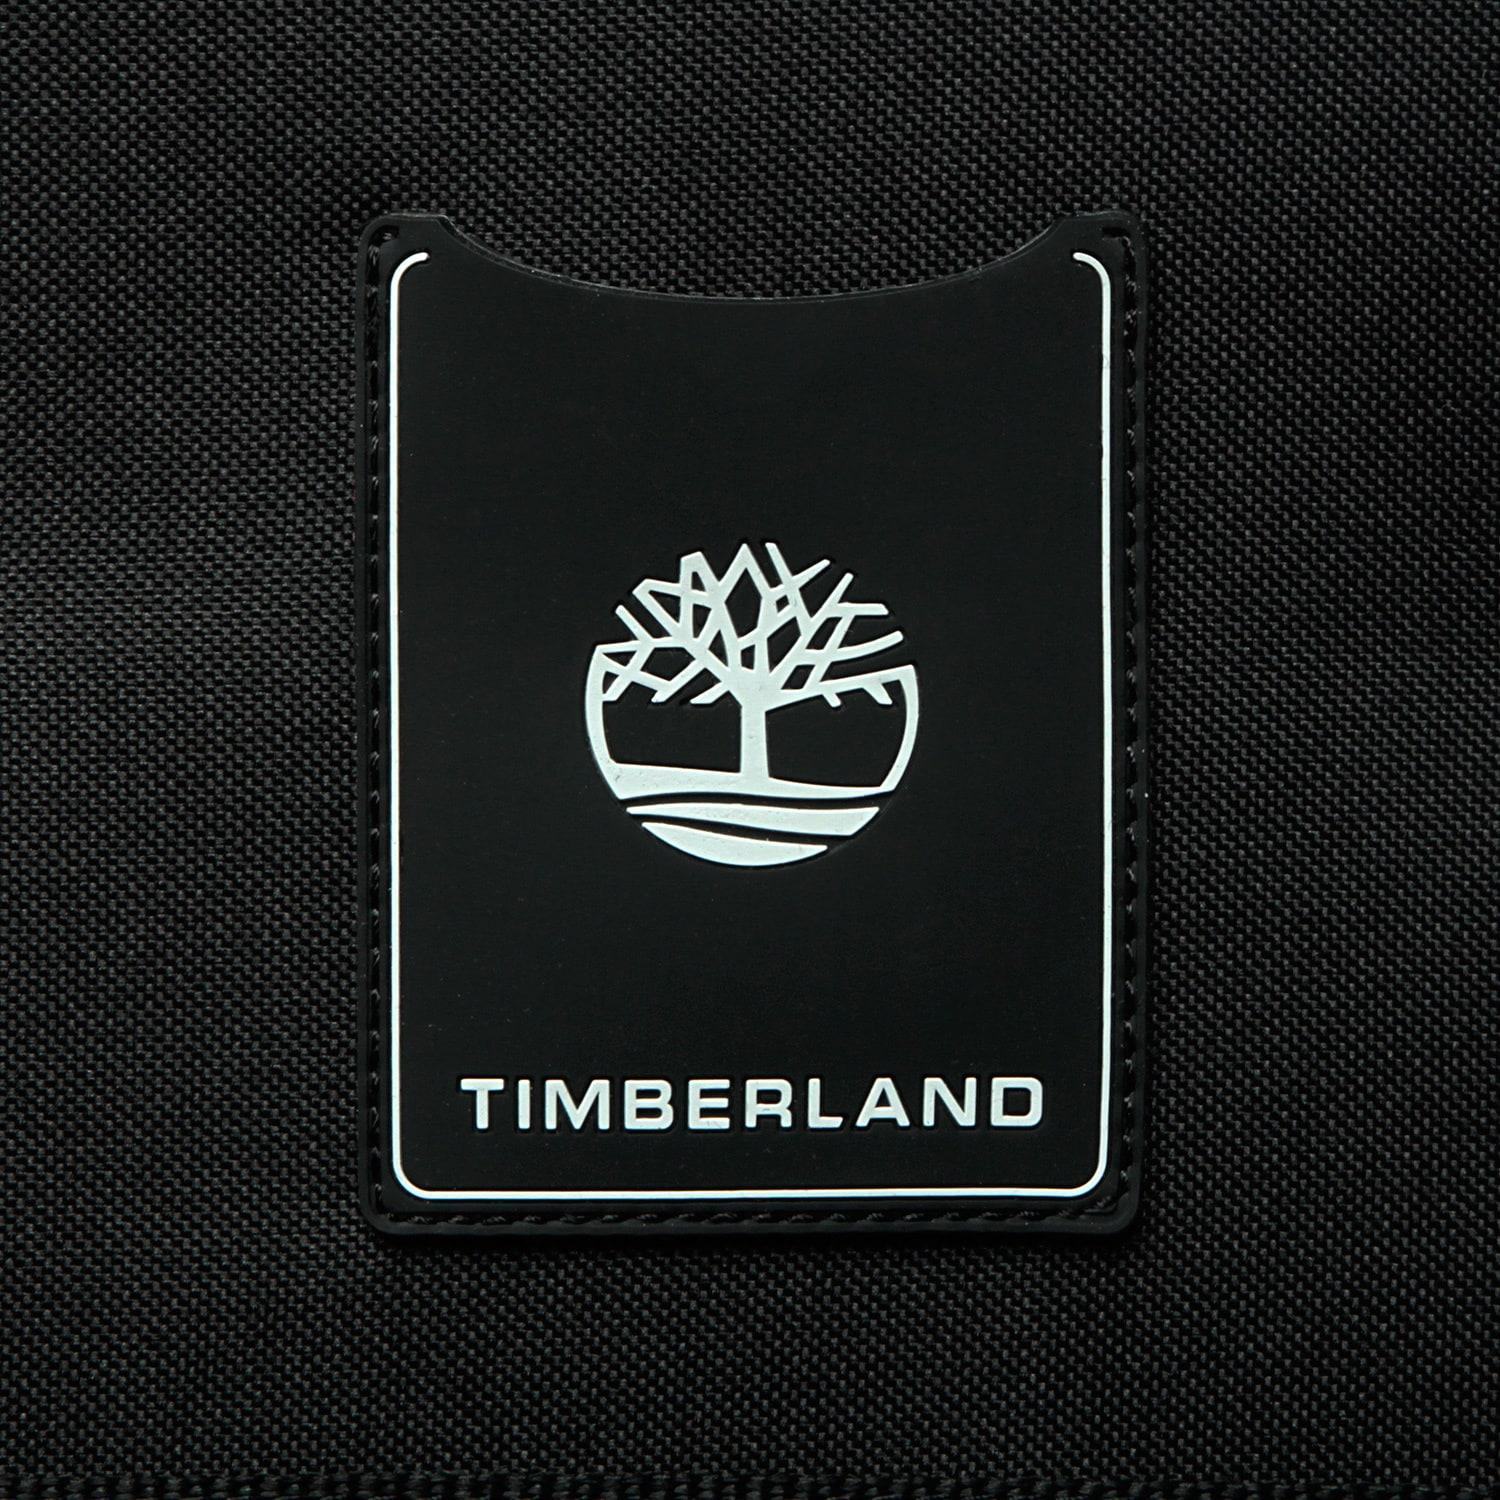 7f219491d1 Shop Timberland Claremont 28-inch Wheeled Upright Duffel Bag - Free  Shipping Today - Overstock - 7731968